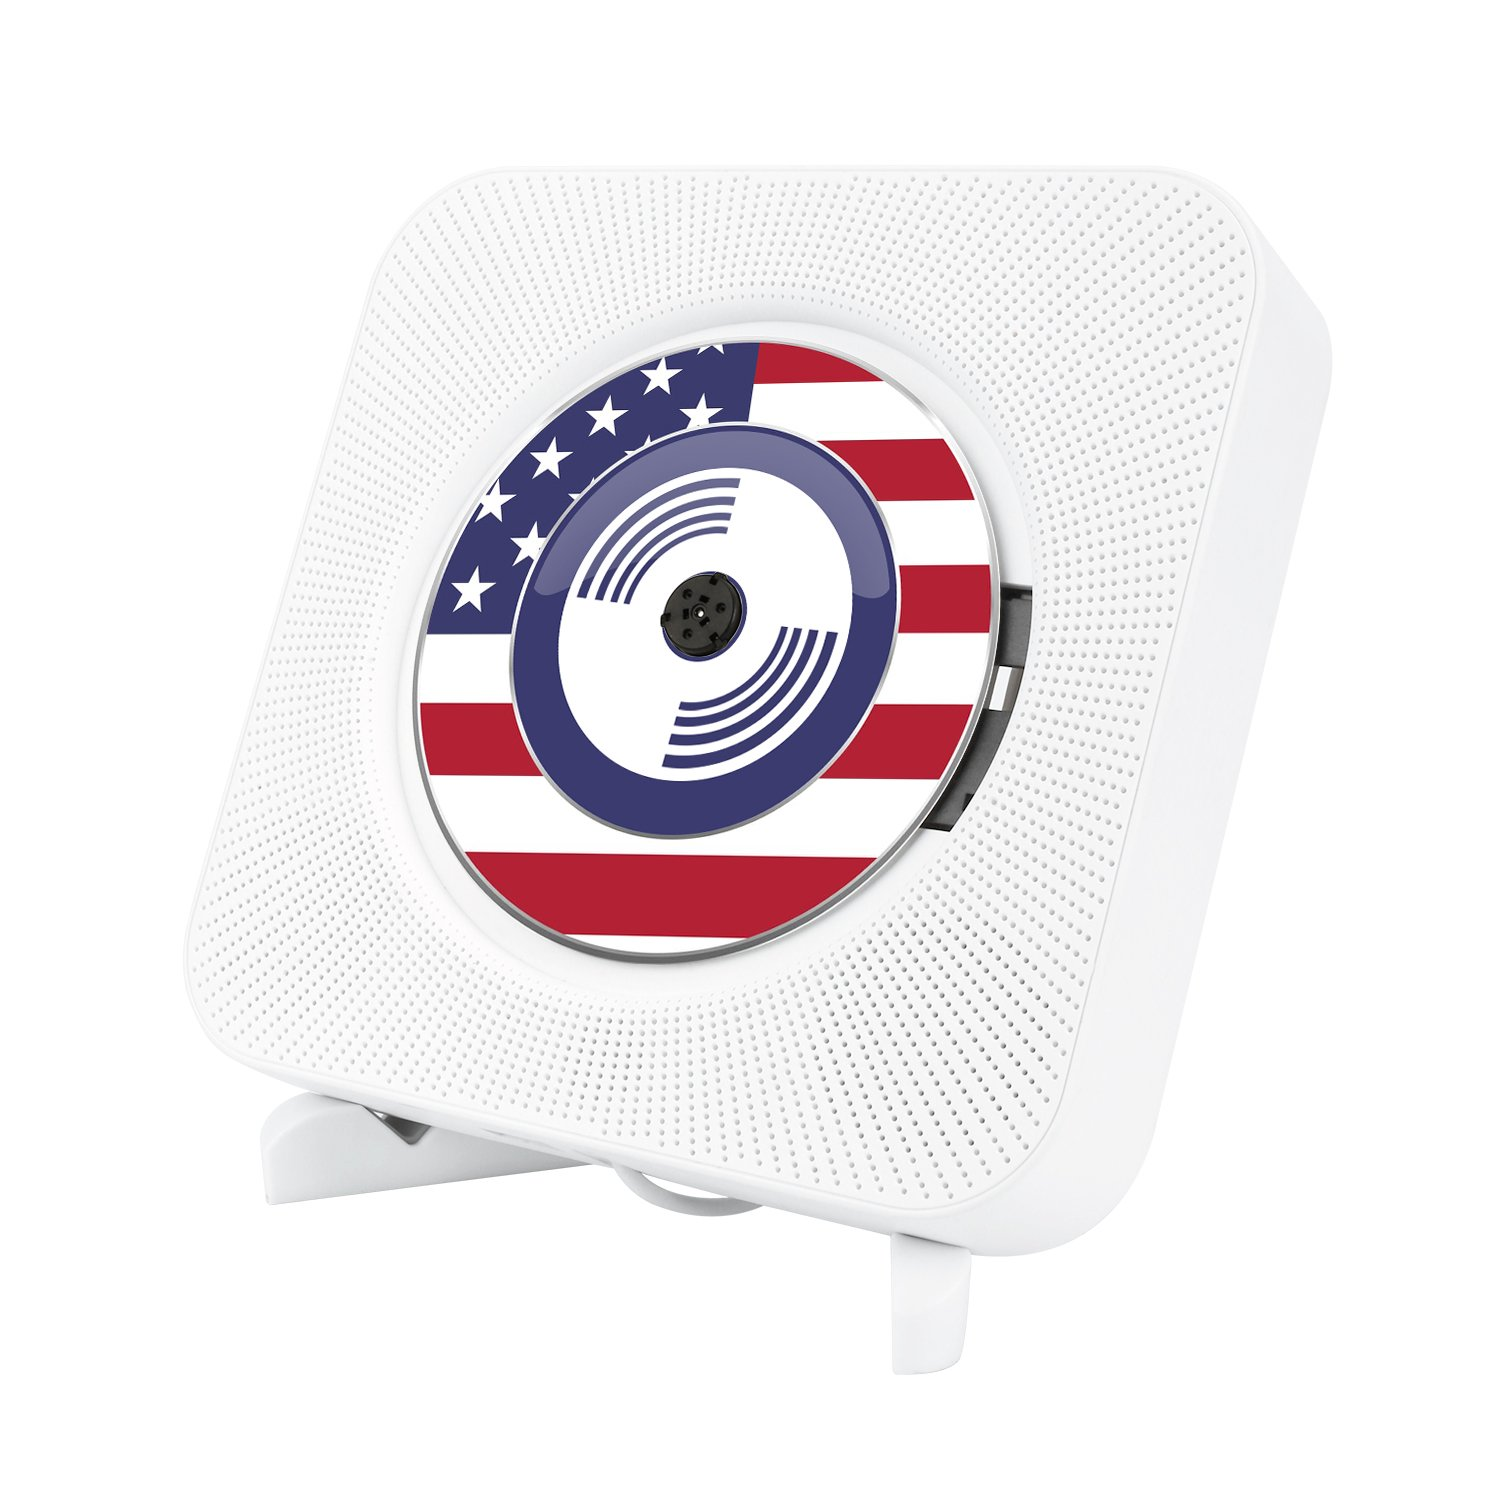 COOAU Portable CD Player Bluetooth Hi-Fi Speaker Wall Mountable Home Audio Speaker with Remote Control, USB MP3 WMA 3.5mm Headphone Jack & AUX input/output, White